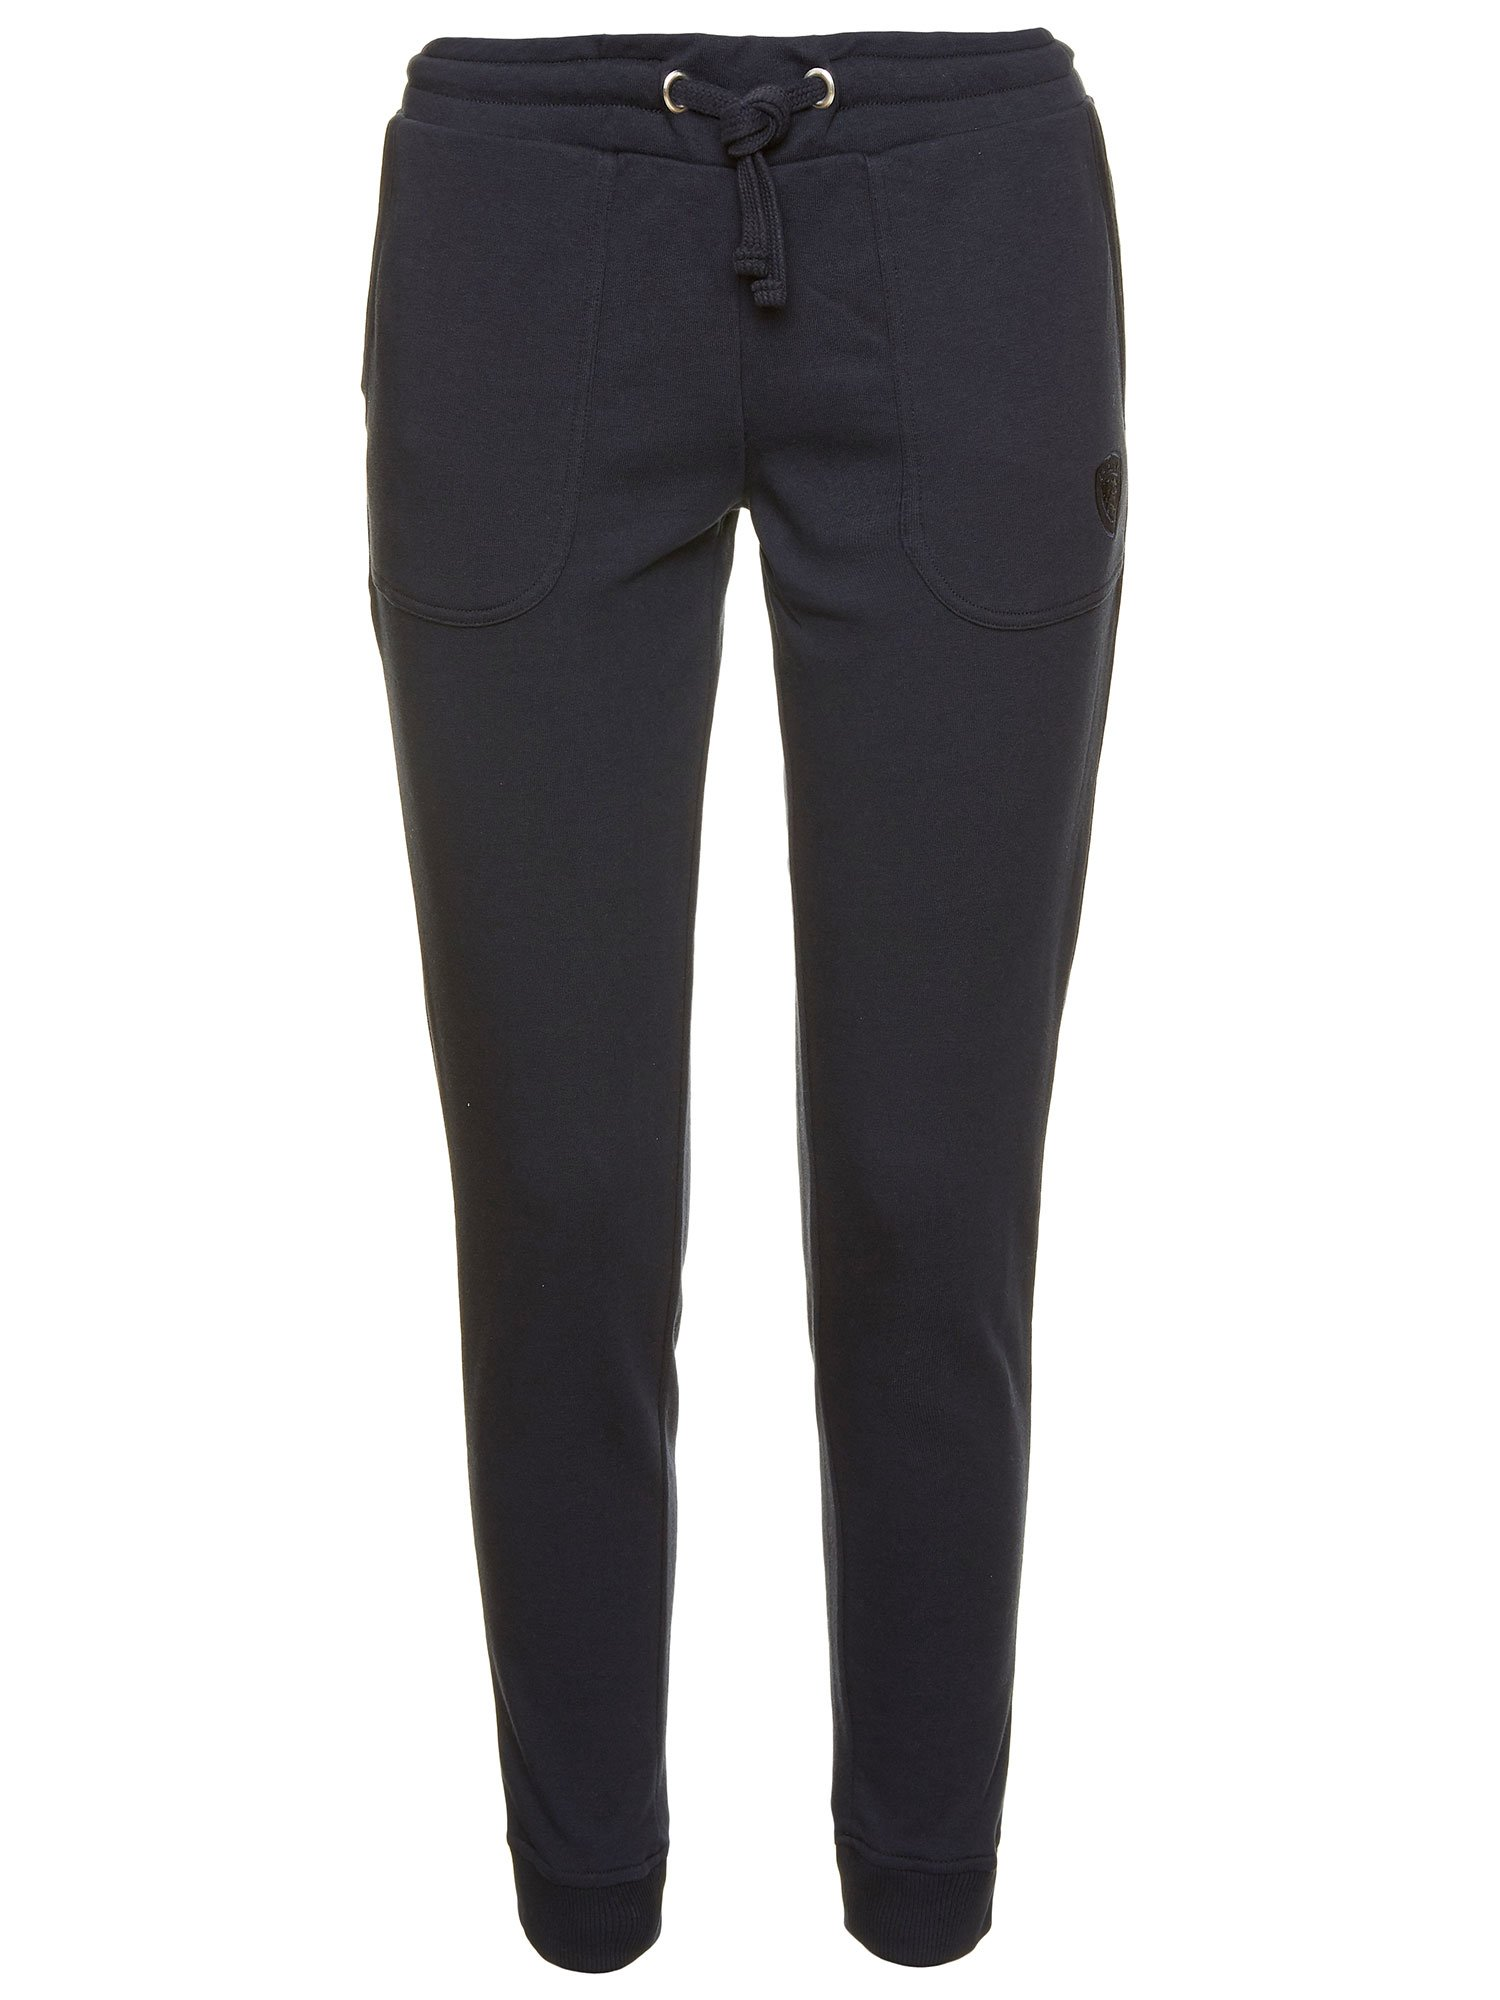 MELANGE SWEATPANTS - Blauer